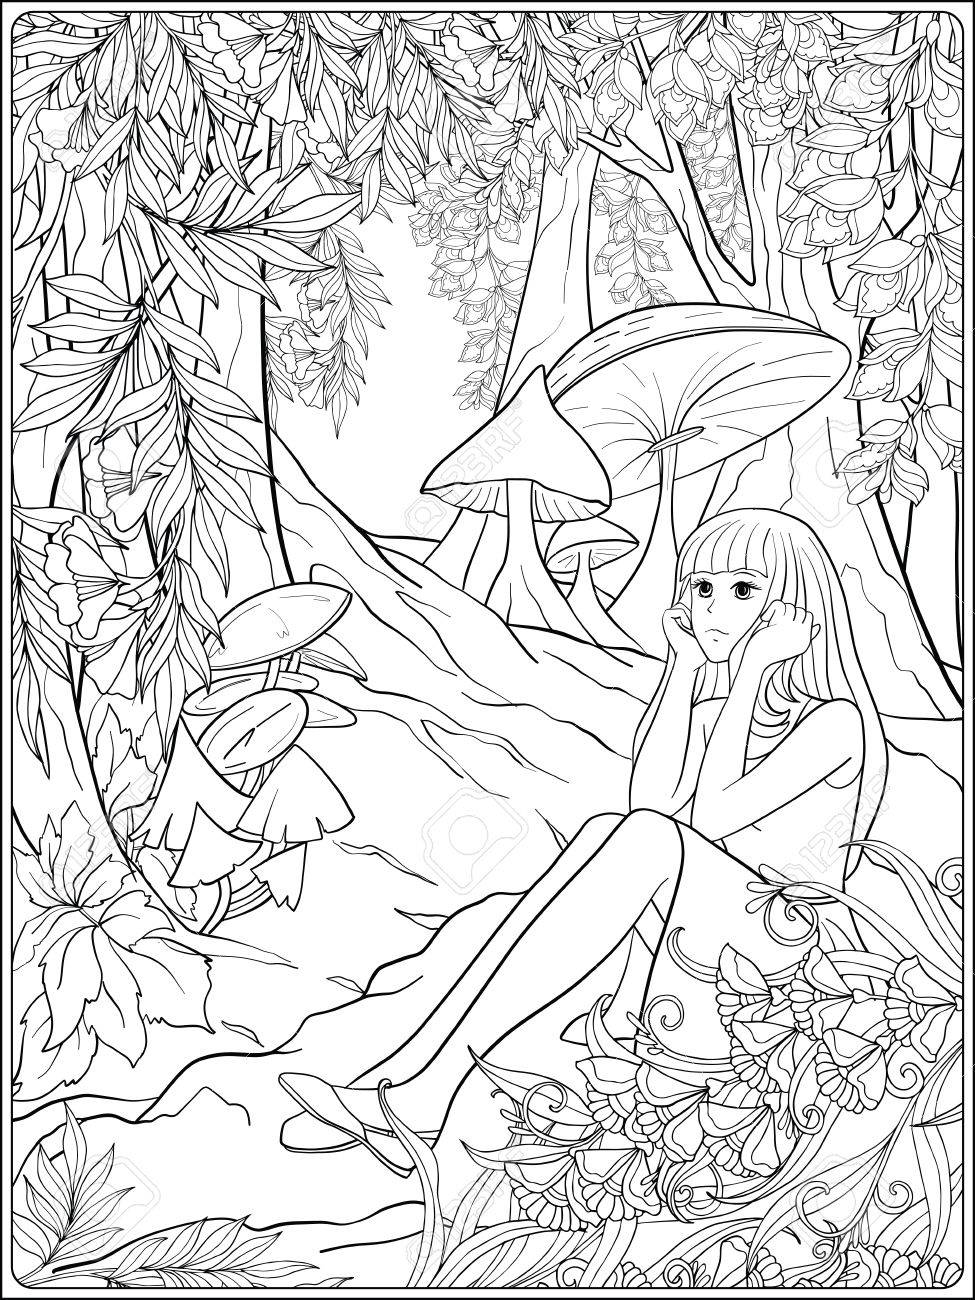 975x1300 Girl Alice In The Woods In The Meadow With Trees And Mushrooms